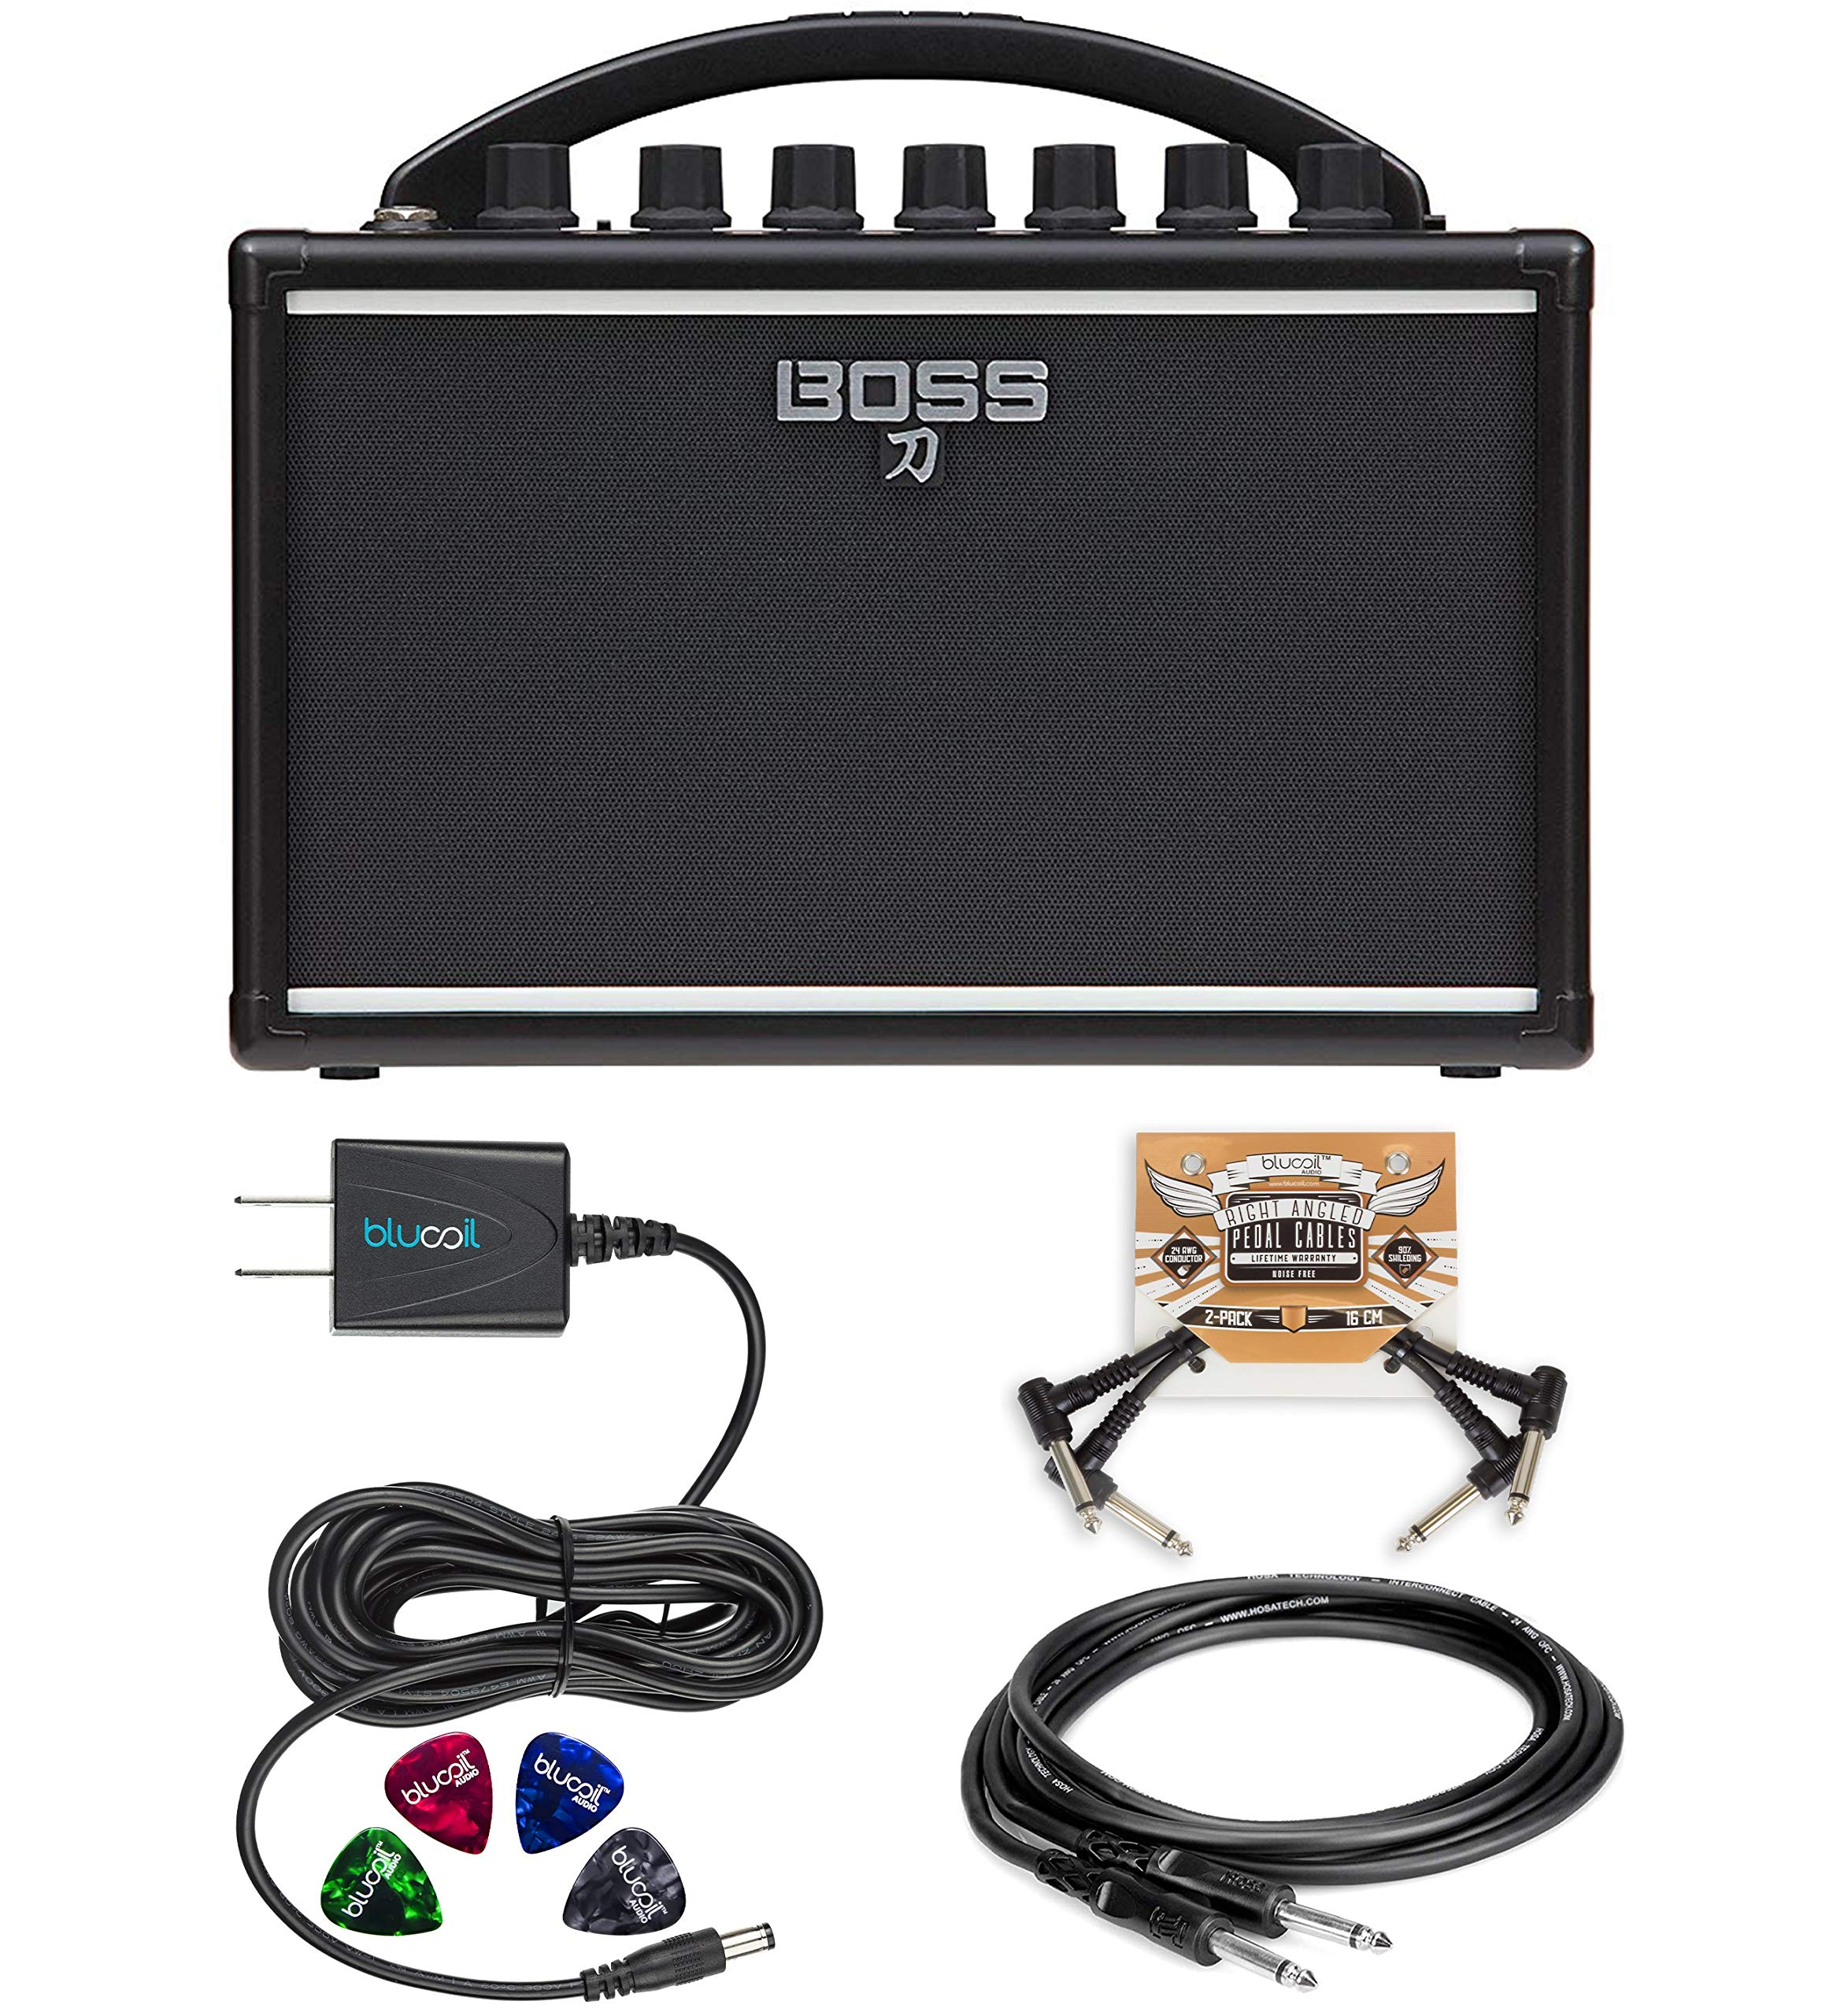 BOSS Katana Mini Guitar Amplifier Bundle with Hosa 5-FT Straight Instrument Cable (1/4in), Blucoil Slim 9V Power Supply AC Adapter, 2-Pack of Pedal Patch Cables and 4-Pack of Celluloid Guitar Picks by blucoil (Image #1)